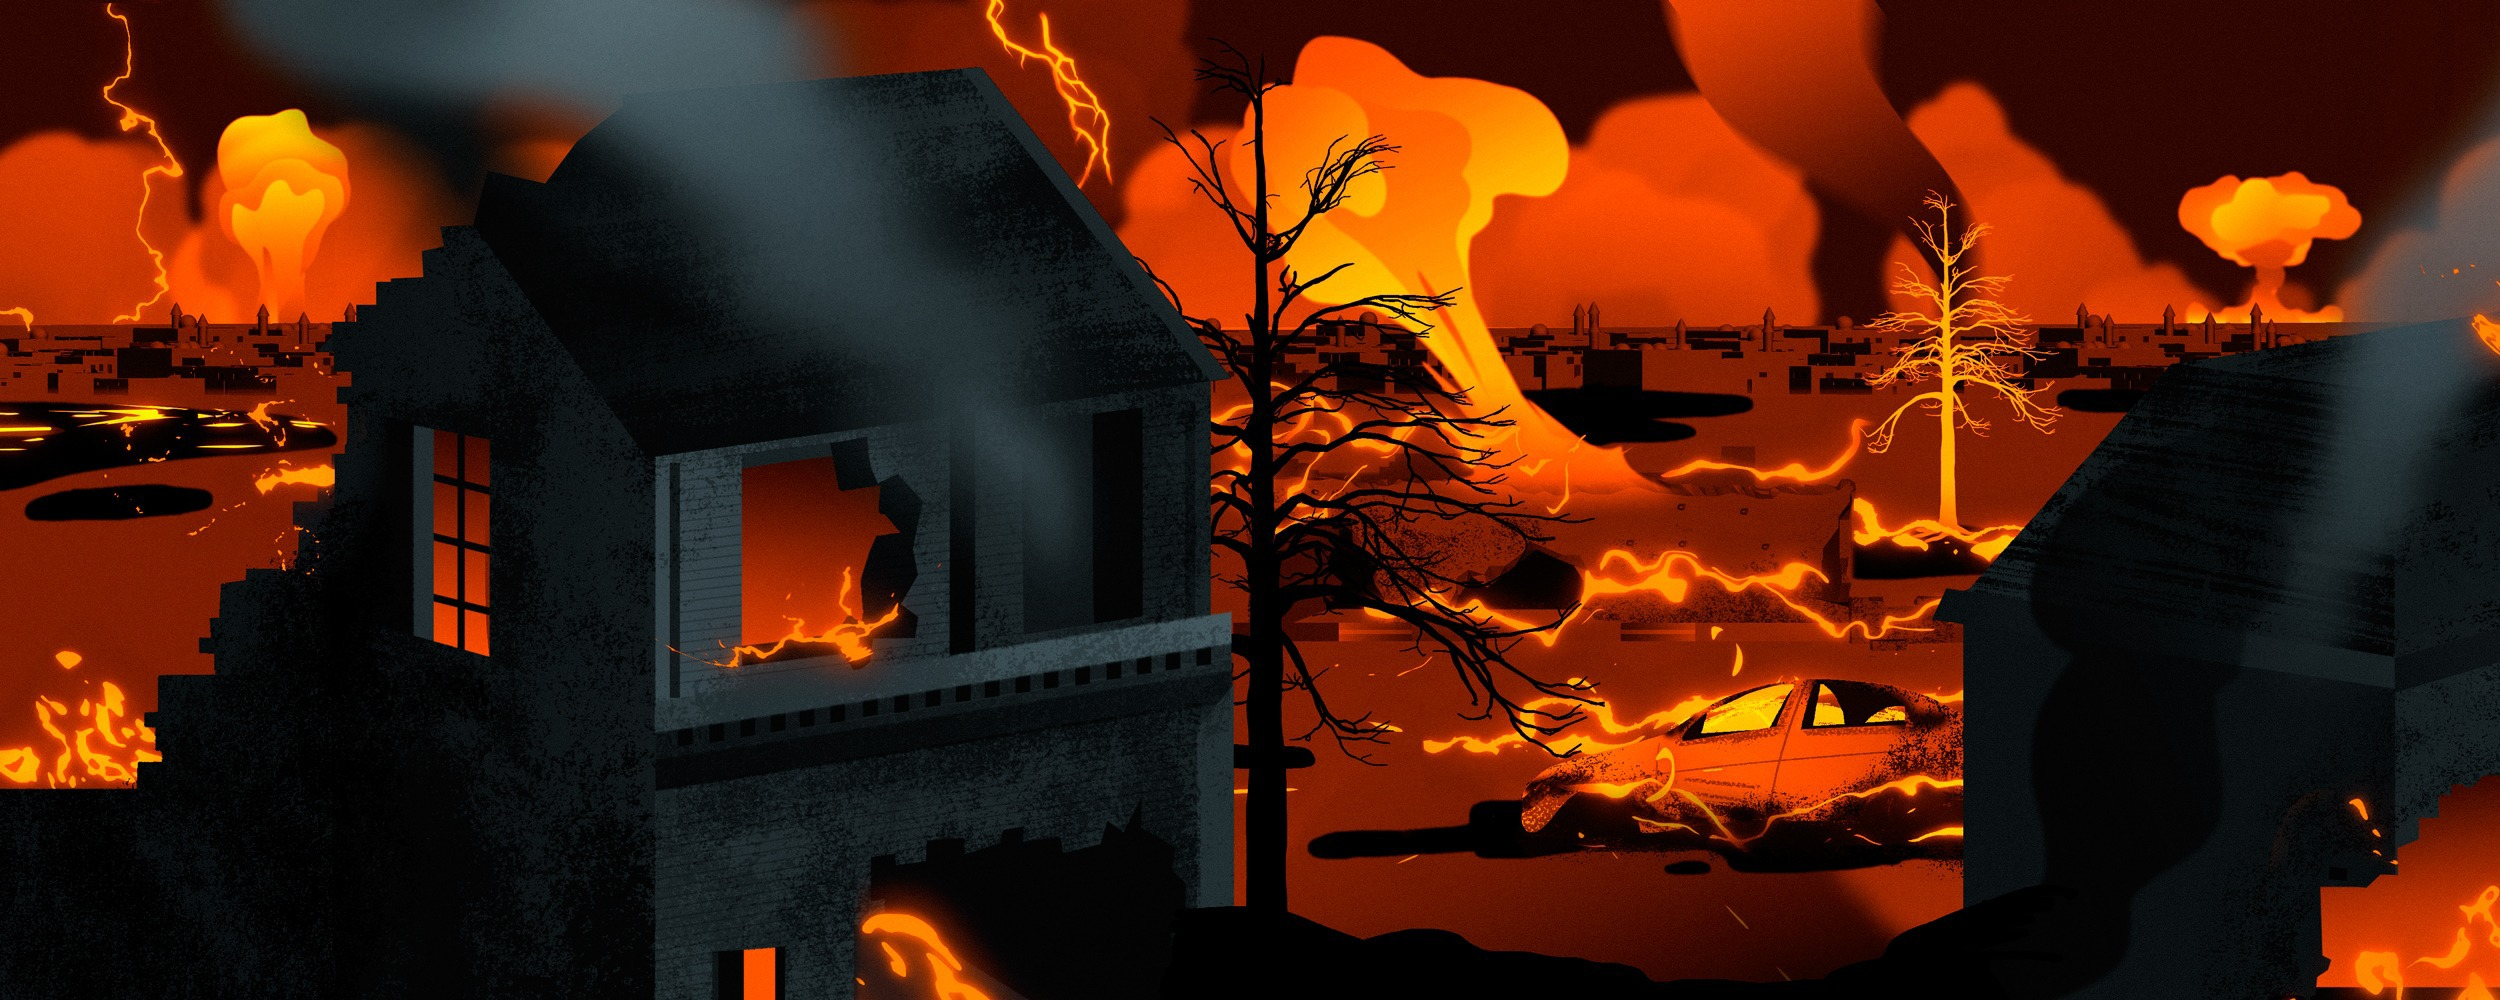 Apocalypse now: the changing face of mass destruction